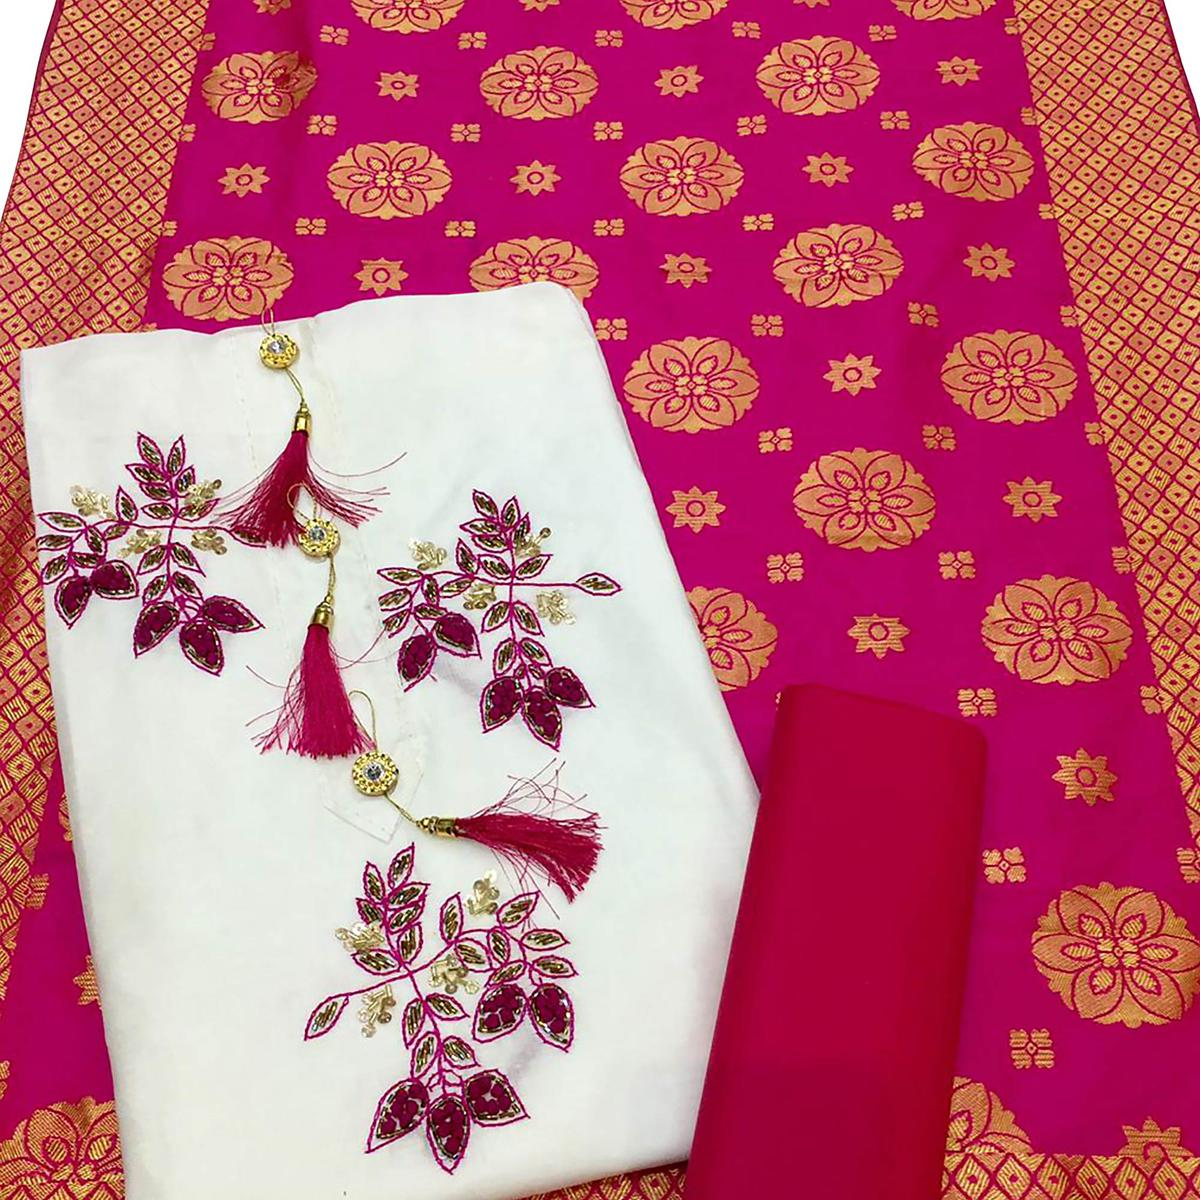 Groovy White-Pink Colored Partywear Embroidered Cotton Dress Material With Banarasi Silk Dupatta